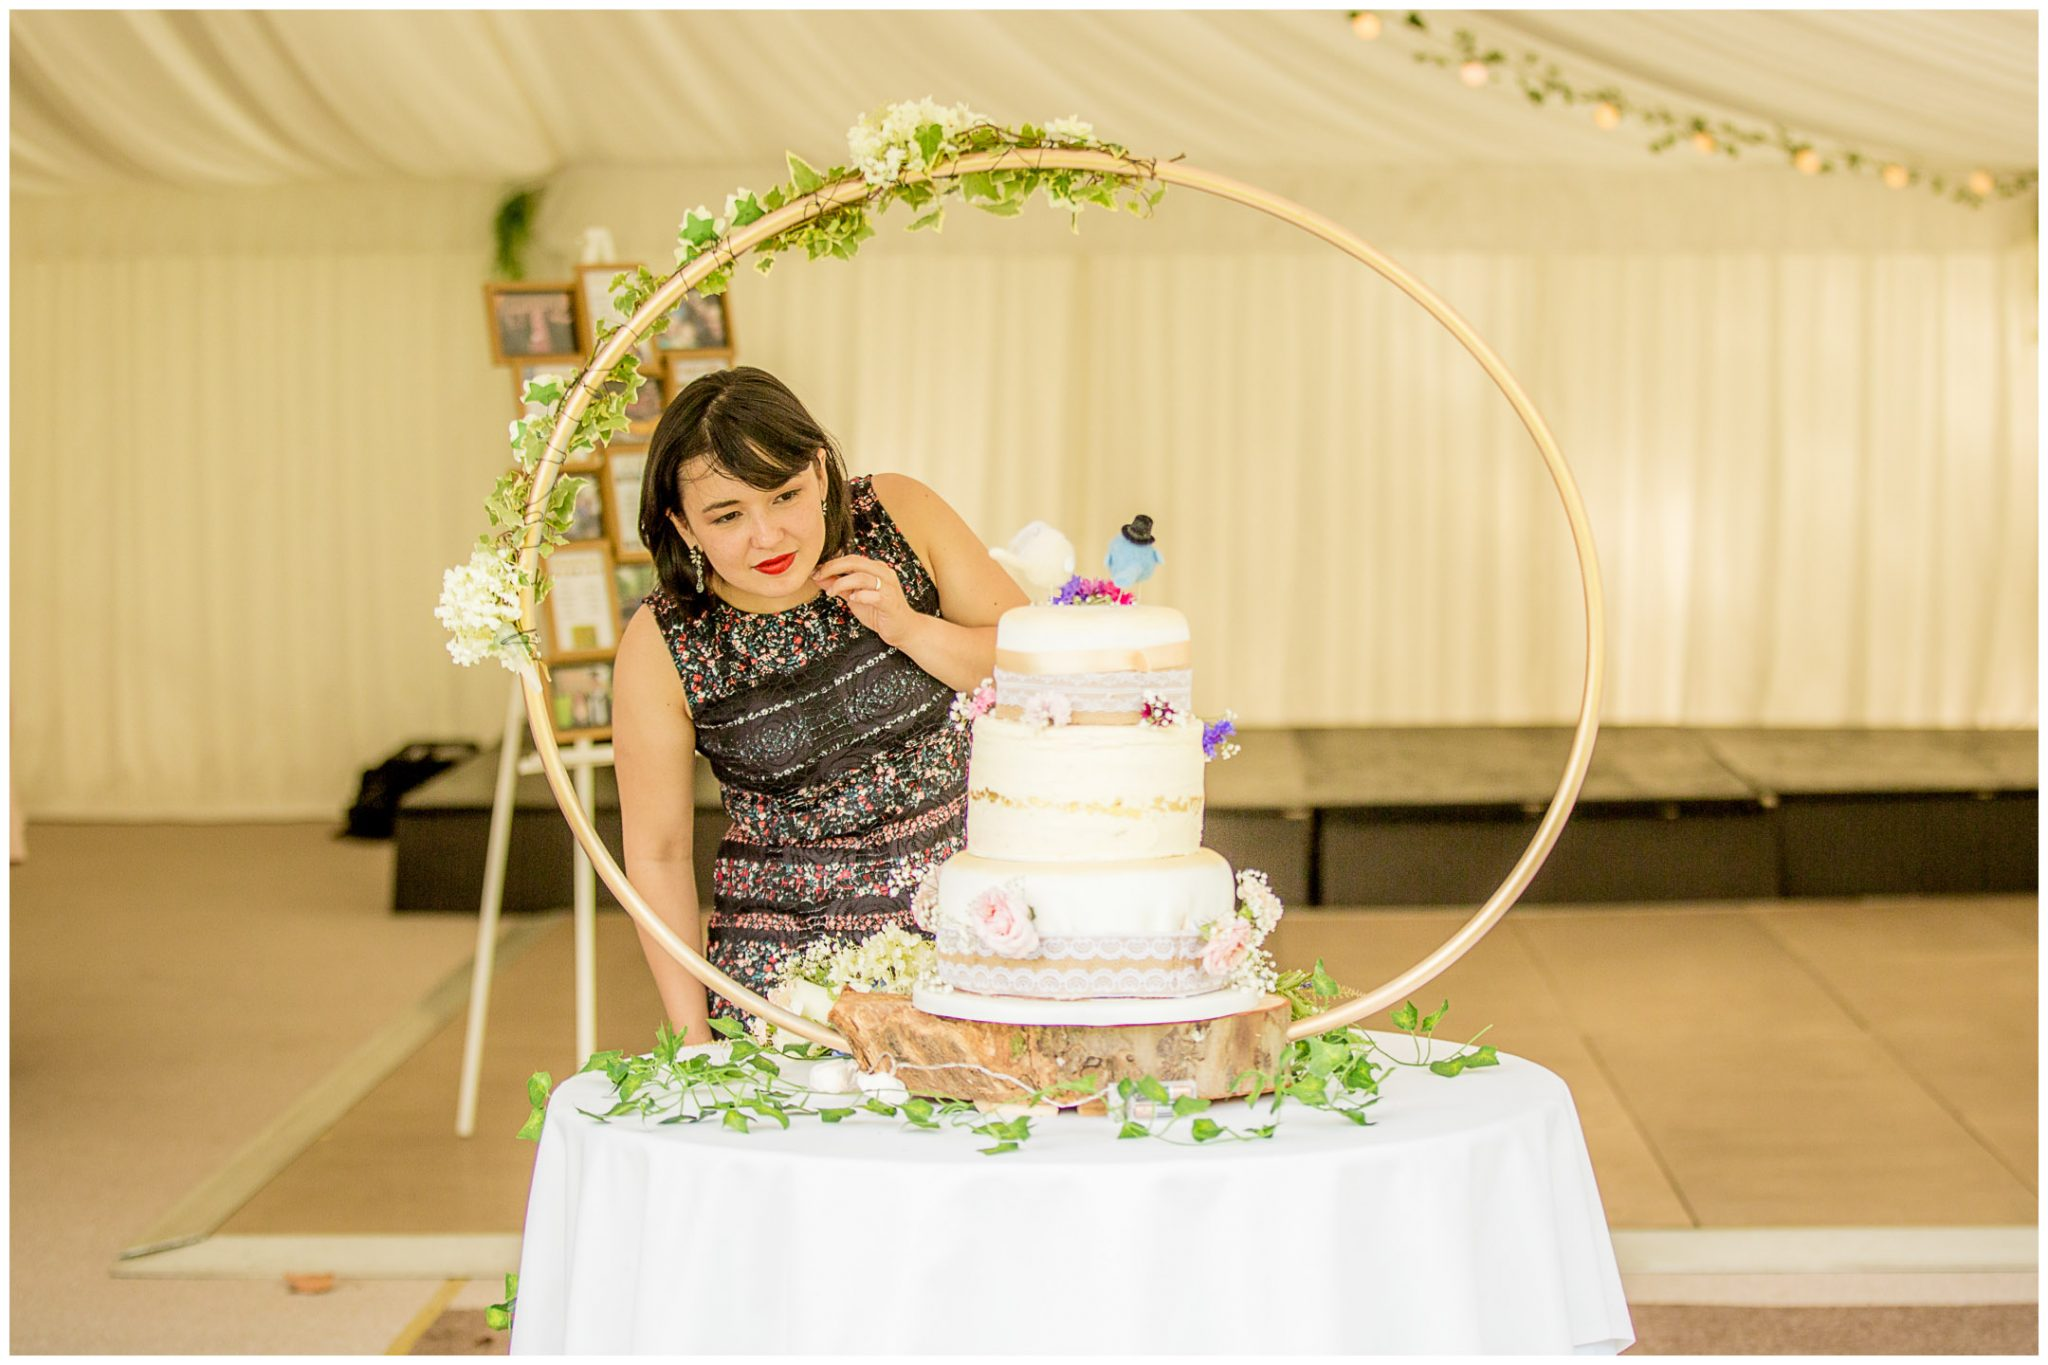 A guest checks out the wedding cake, designed and made by the bride